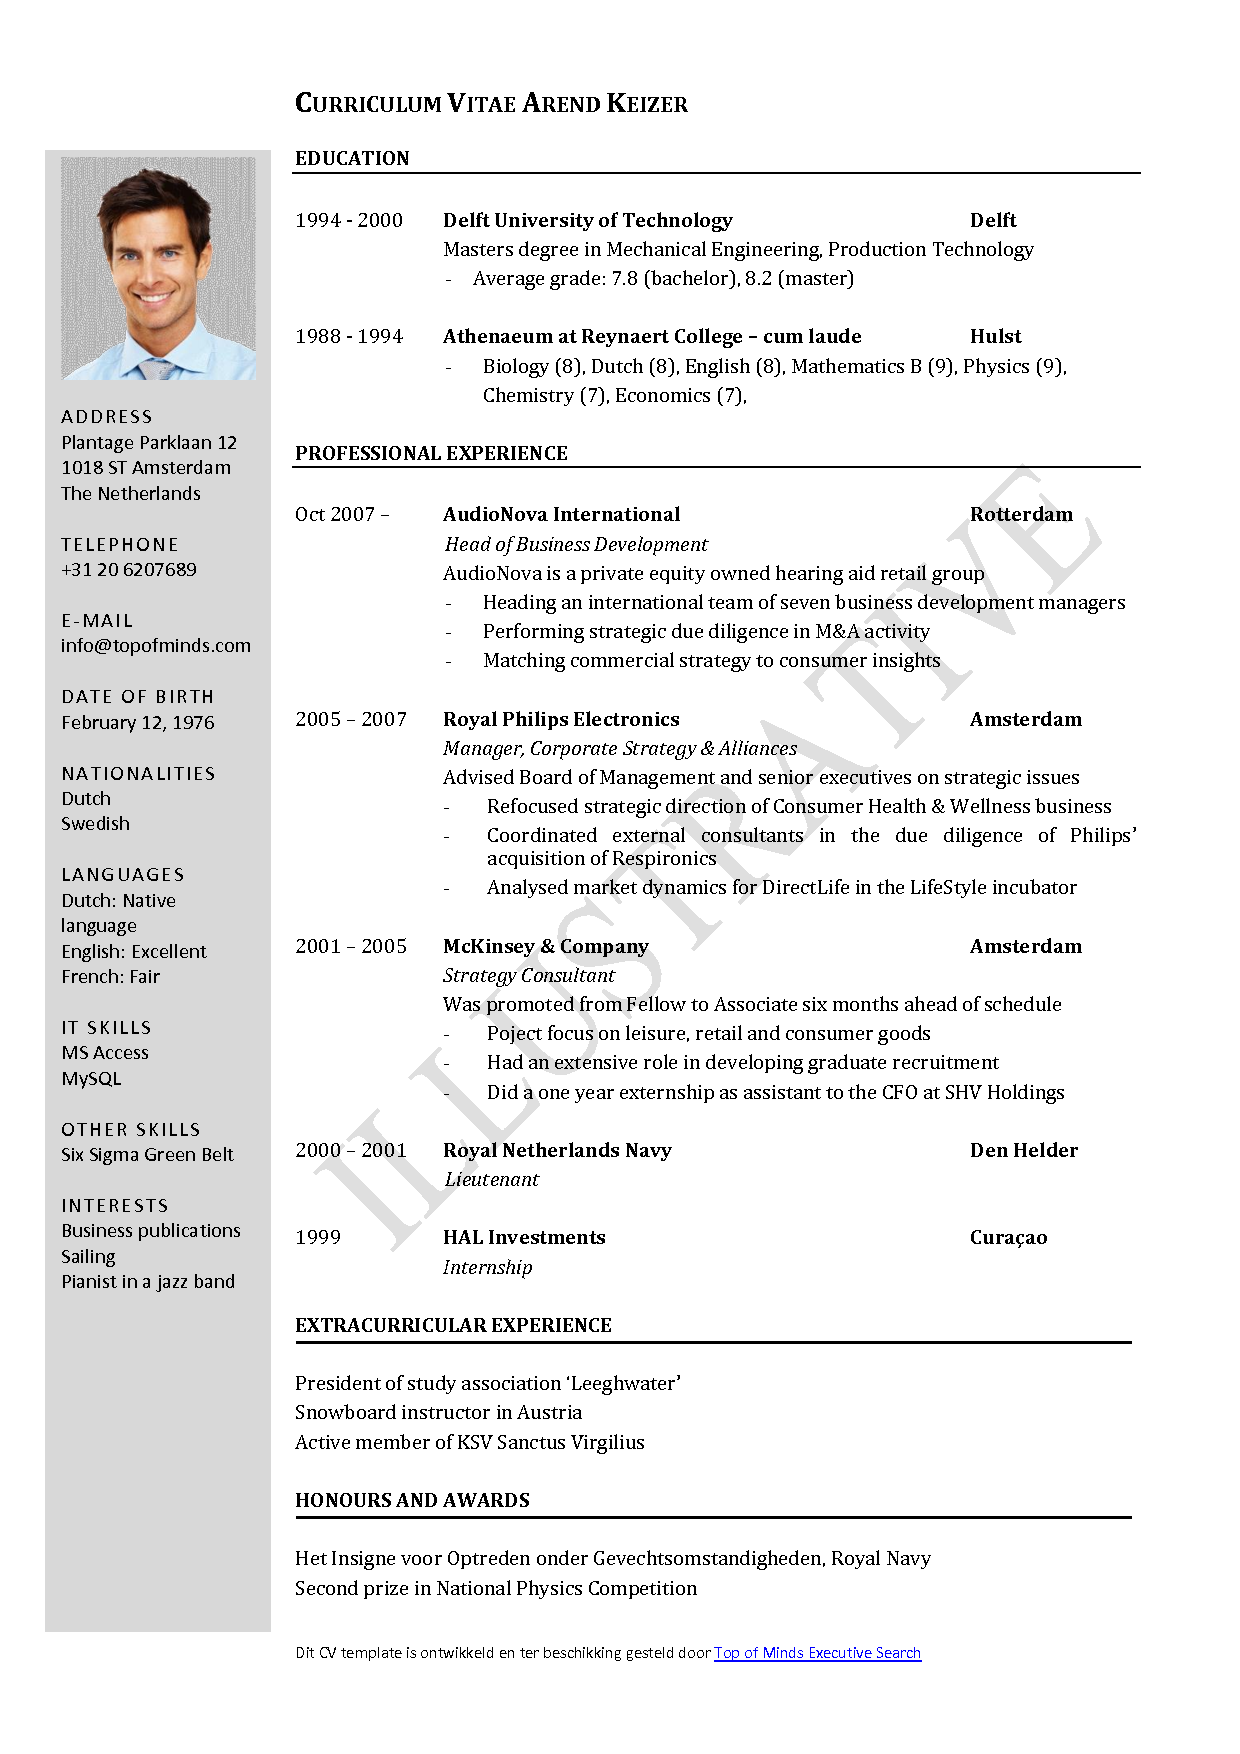 Free curriculum vitae template word download cv template when free curriculum vitae template word download cv template yelopaper Choice Image